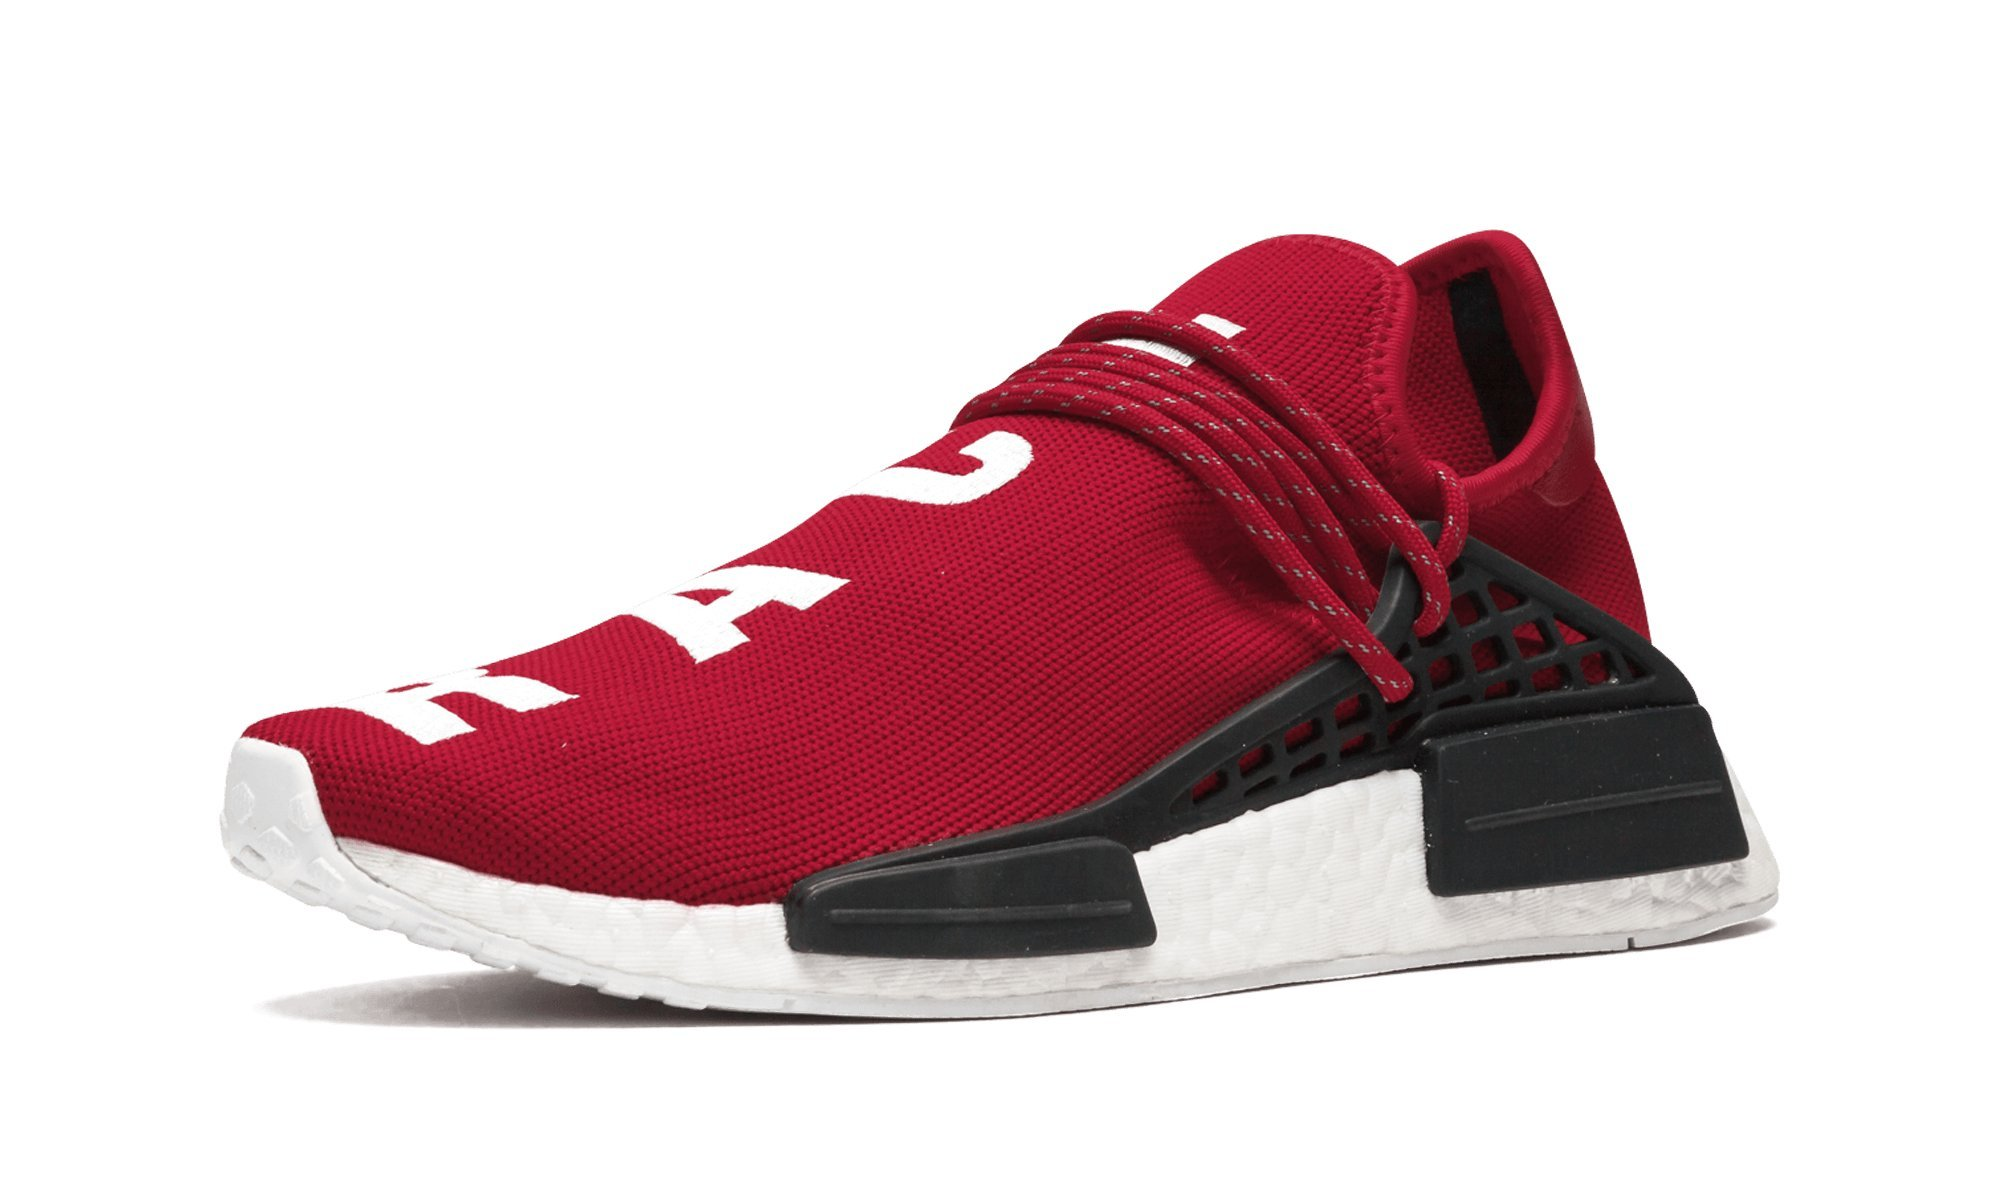 brand new fa49b ff32e Adidas Nmd Human Race Size 9.5 Top Deals & Lowest Price ...